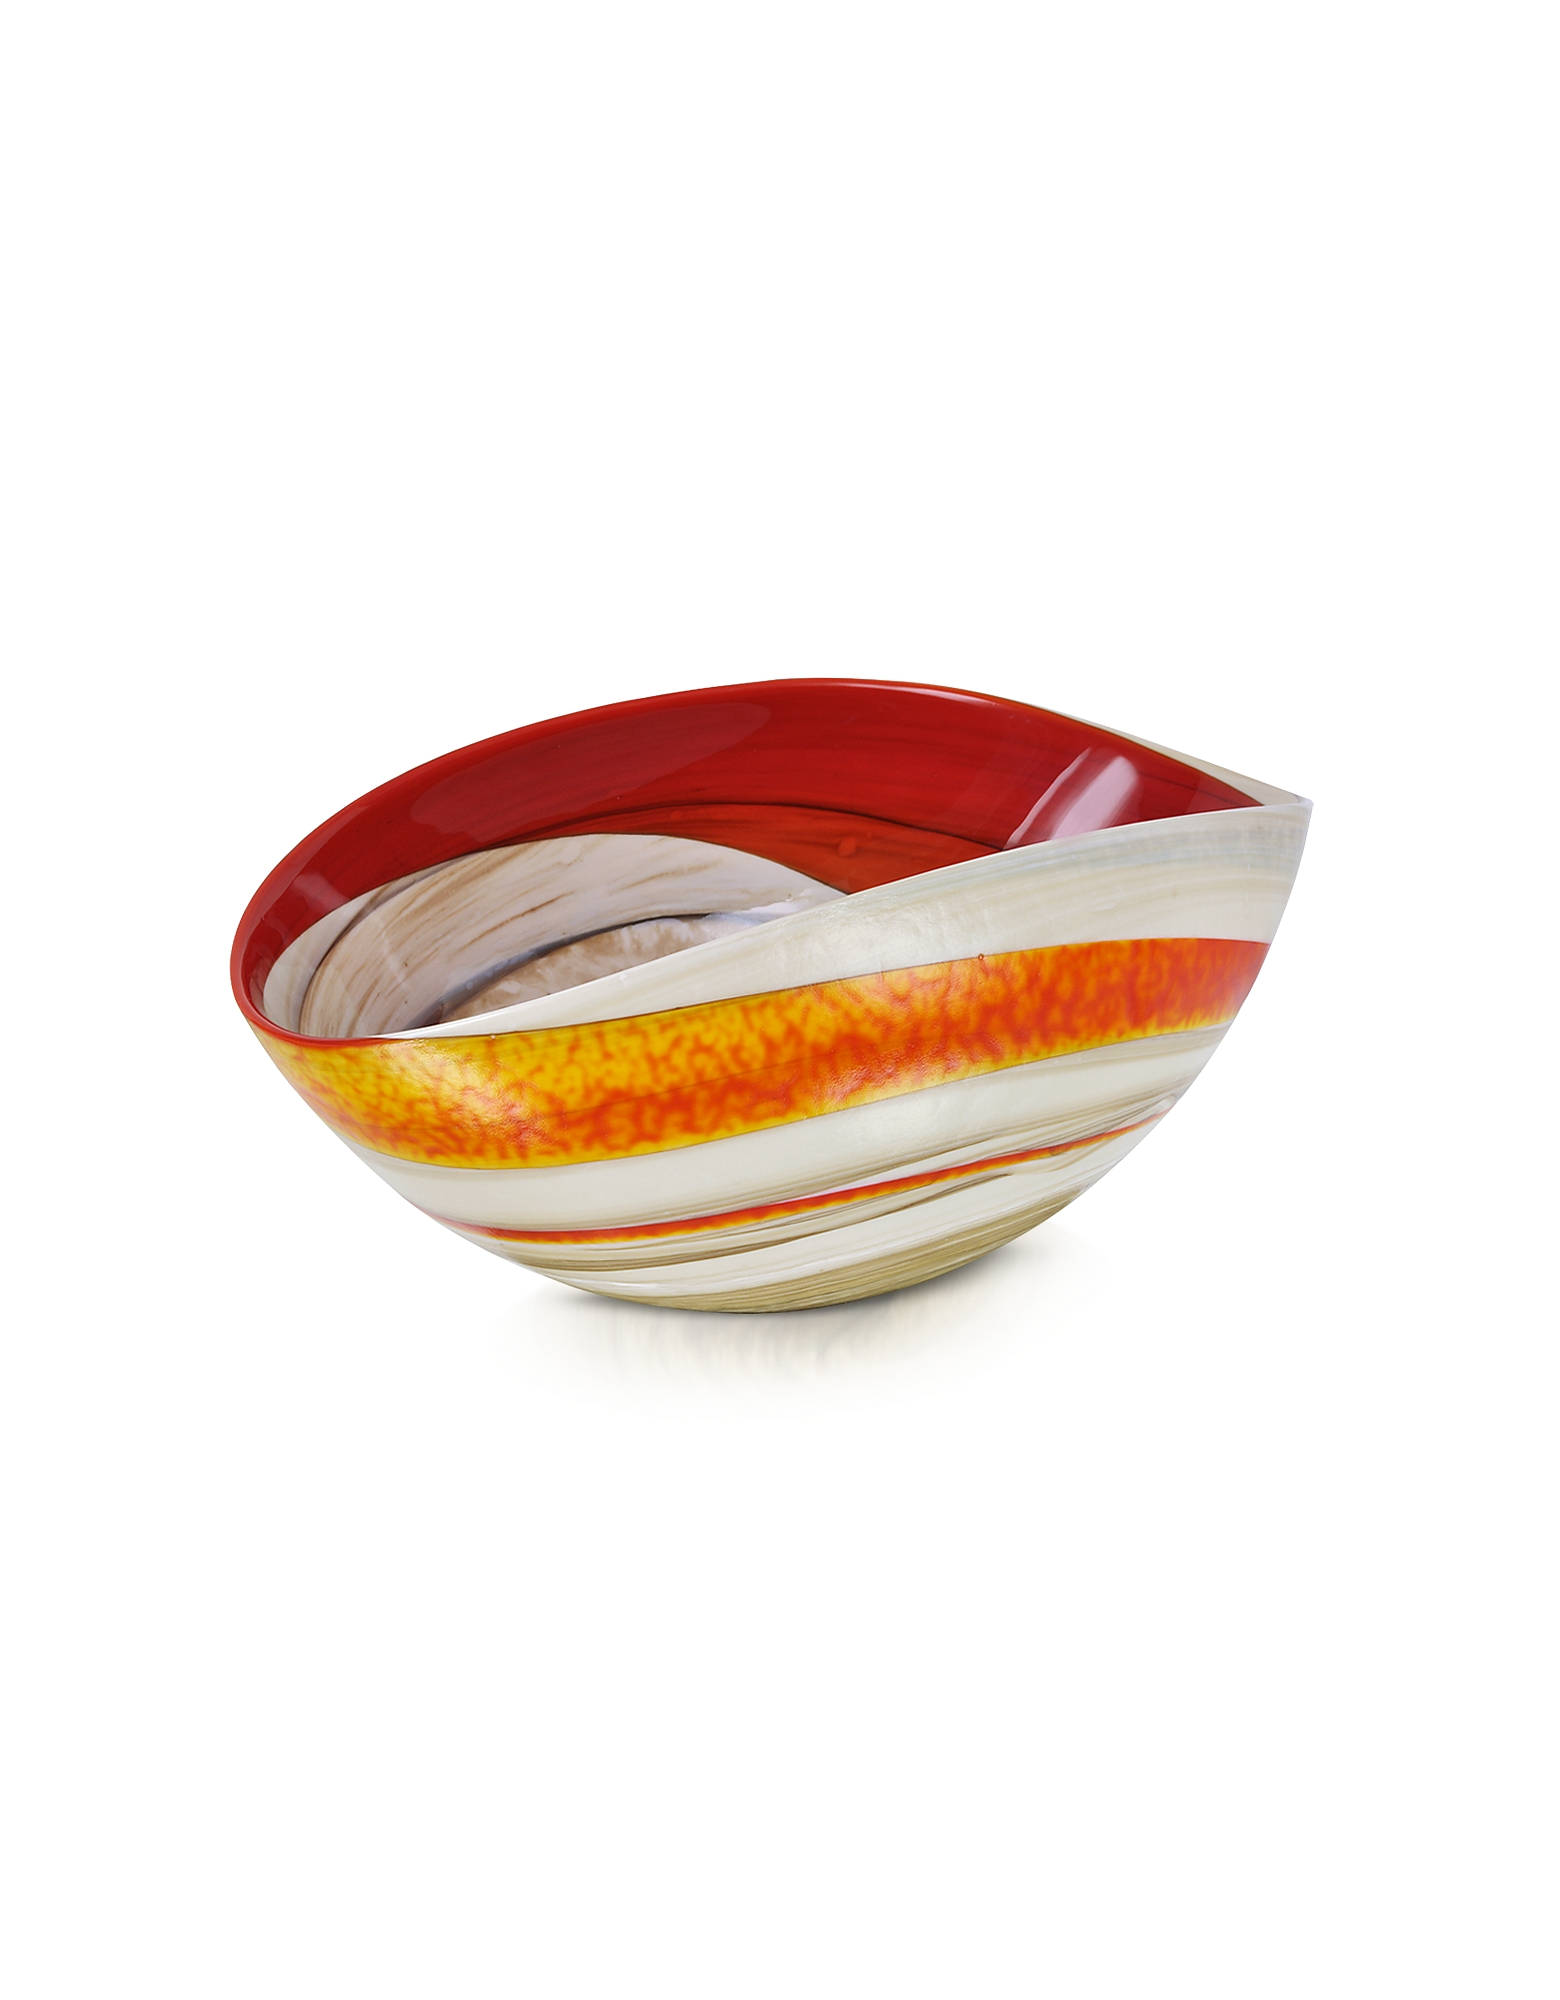 Yalos Murano Designer Decor  Lighting Cartoccio  Small Red and Ivory Marbled Murano Glass Folded Bowl